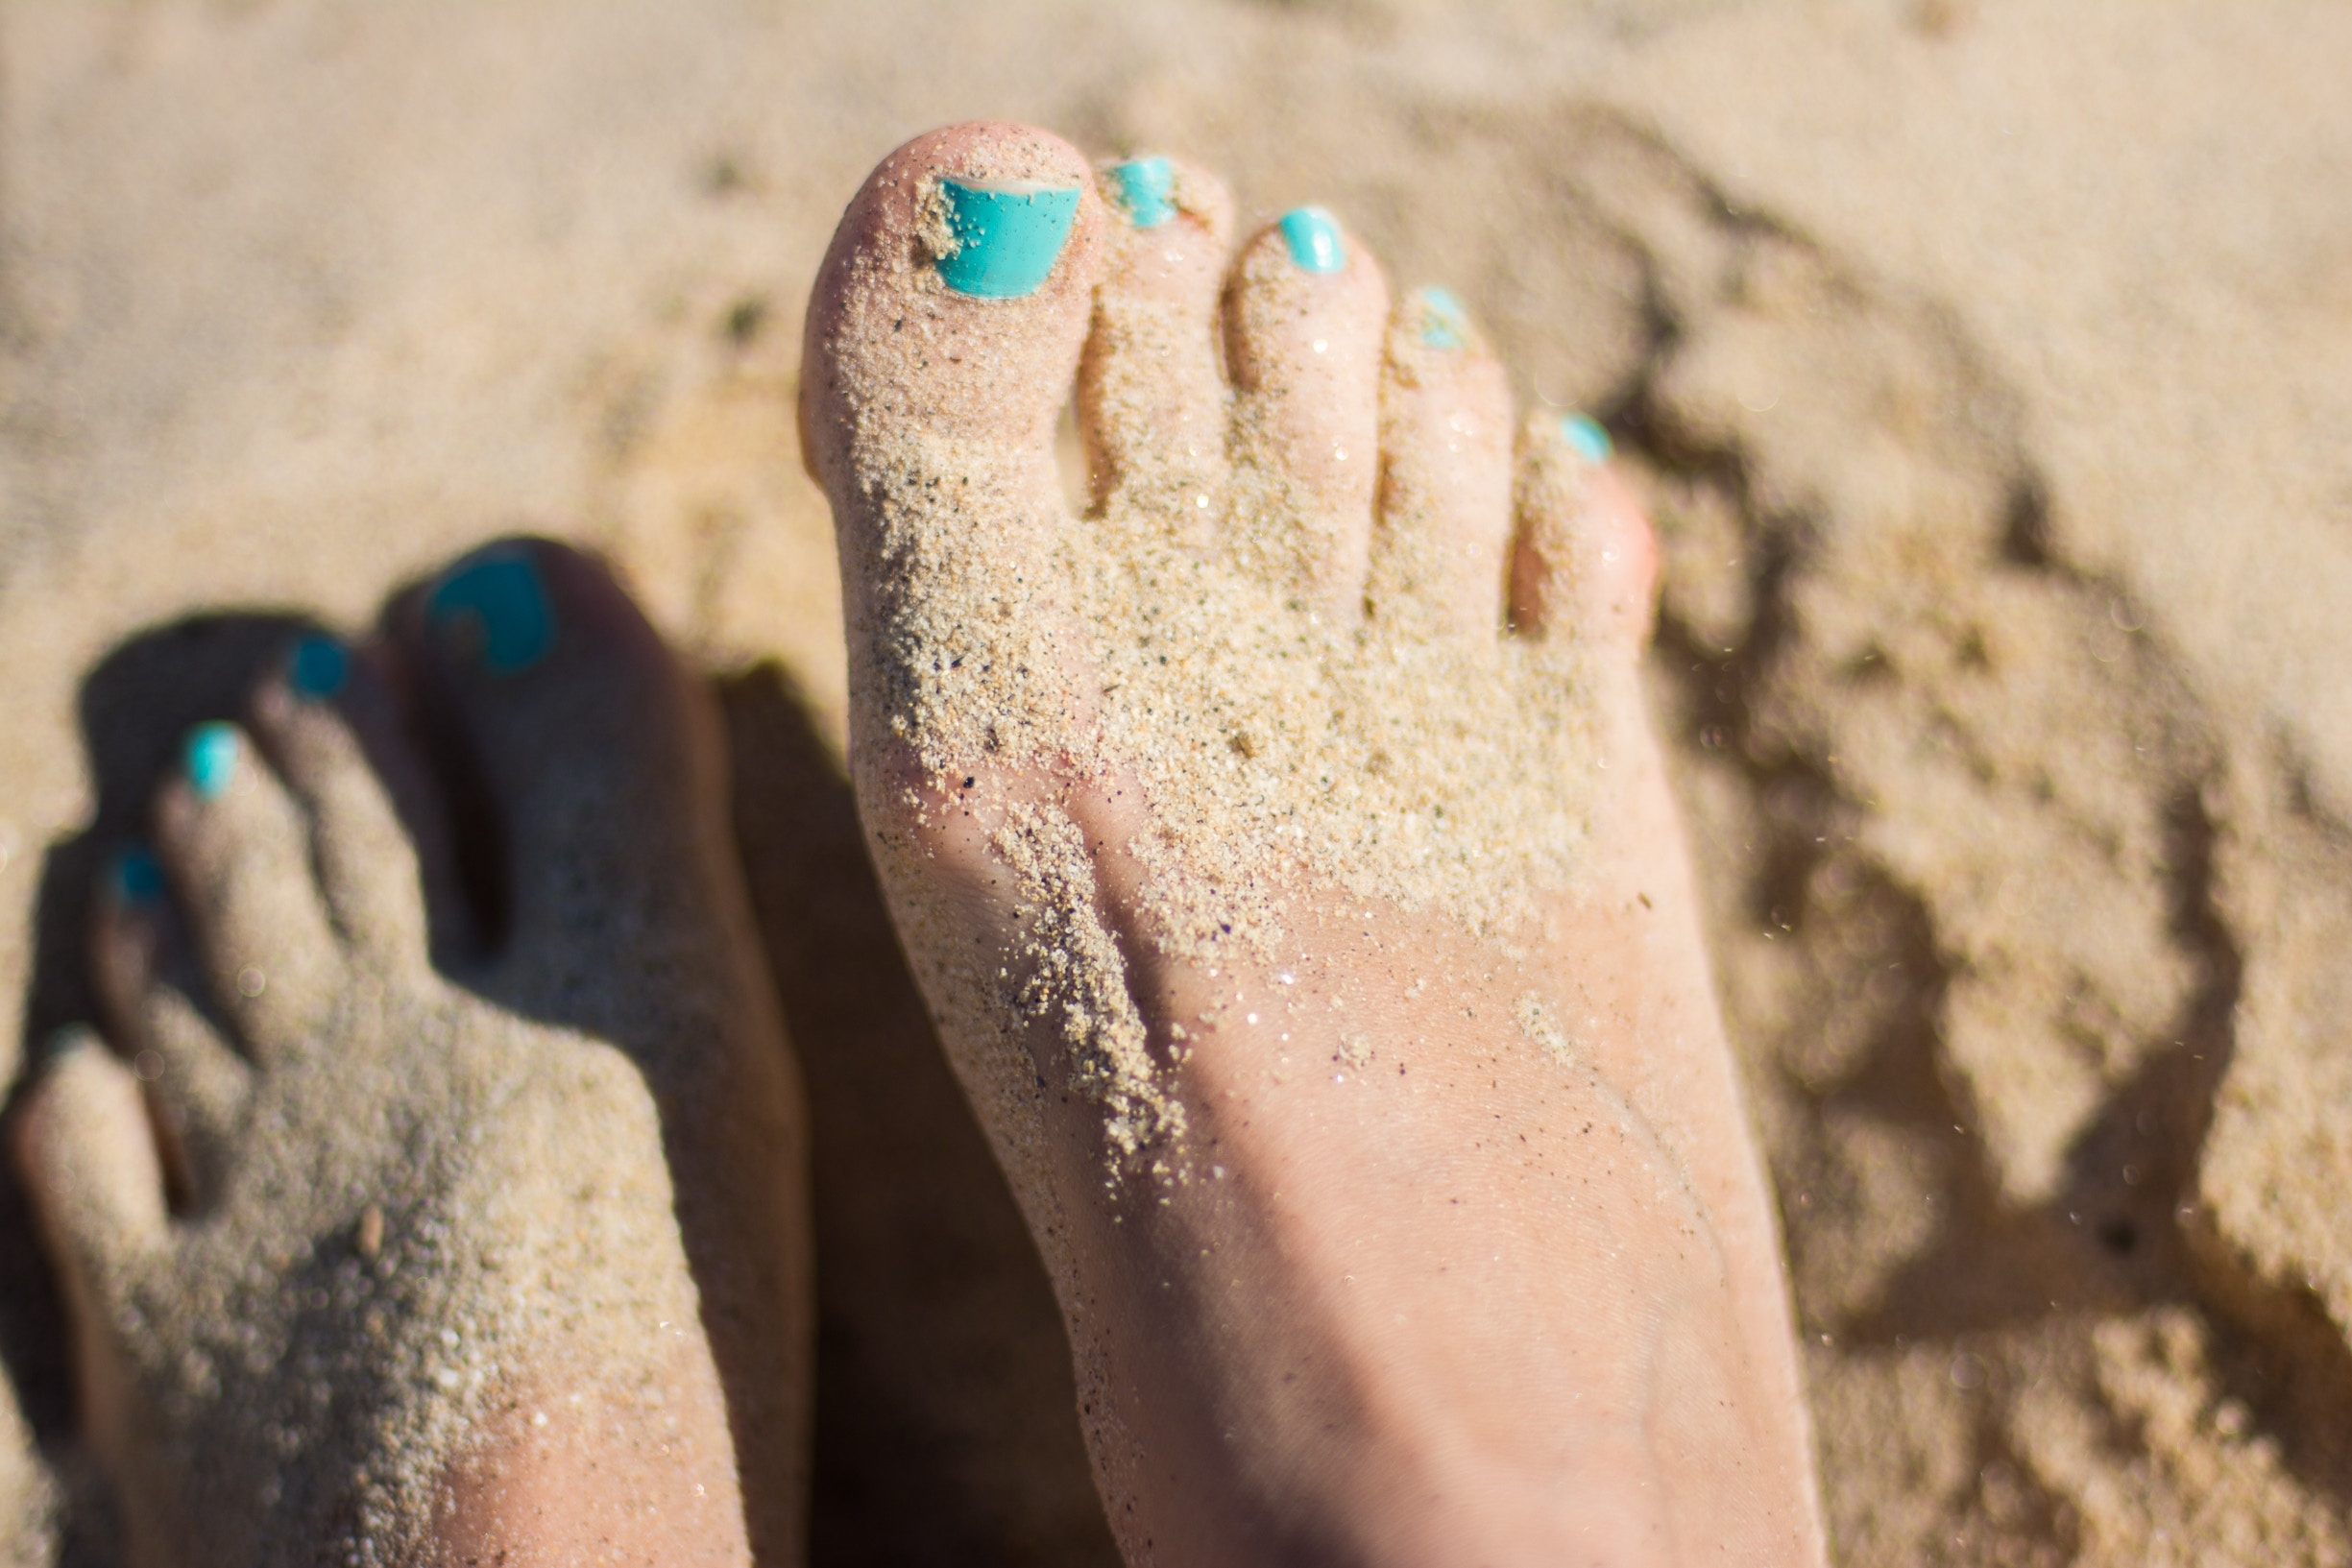 Toenails - Get them trimmed and keep your feet happy